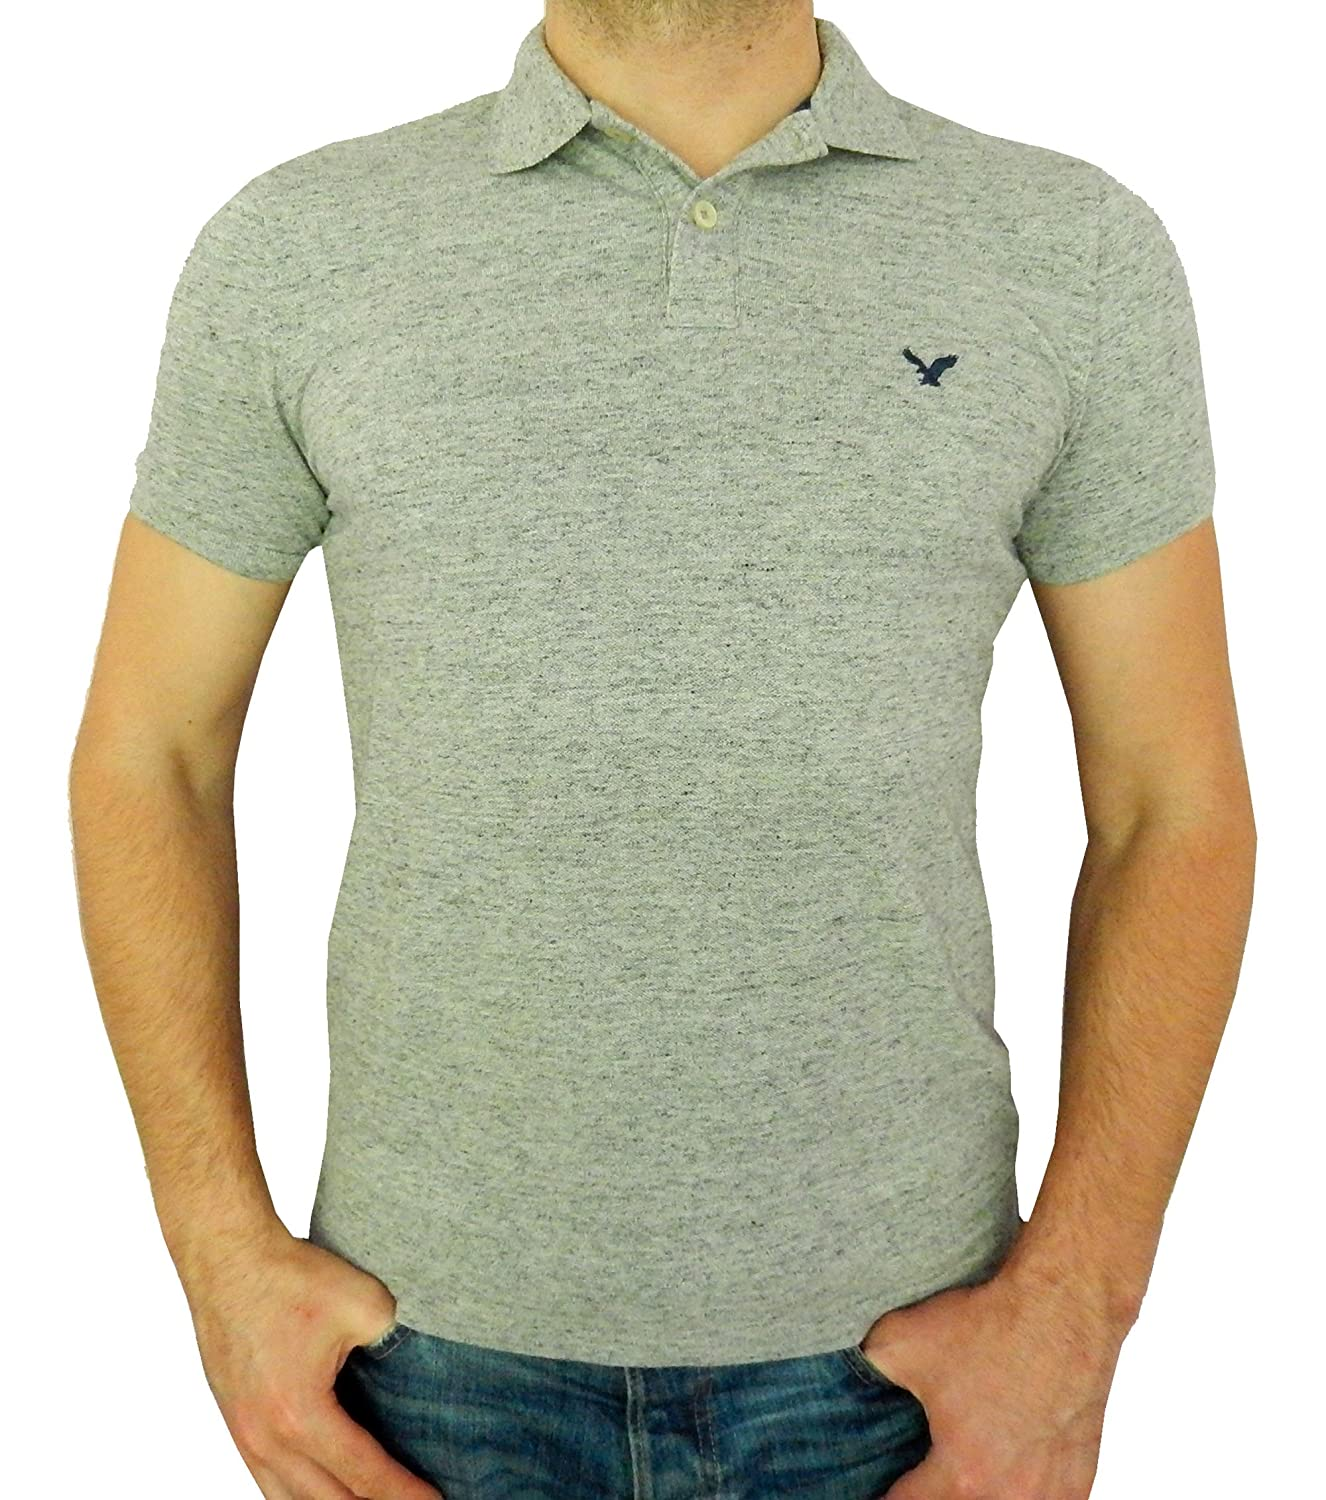 American Eagle Outfitters Core Flex Mens Classic Fit Mesh Solid Polo T-shirt at Amazon Mens Clothing store: